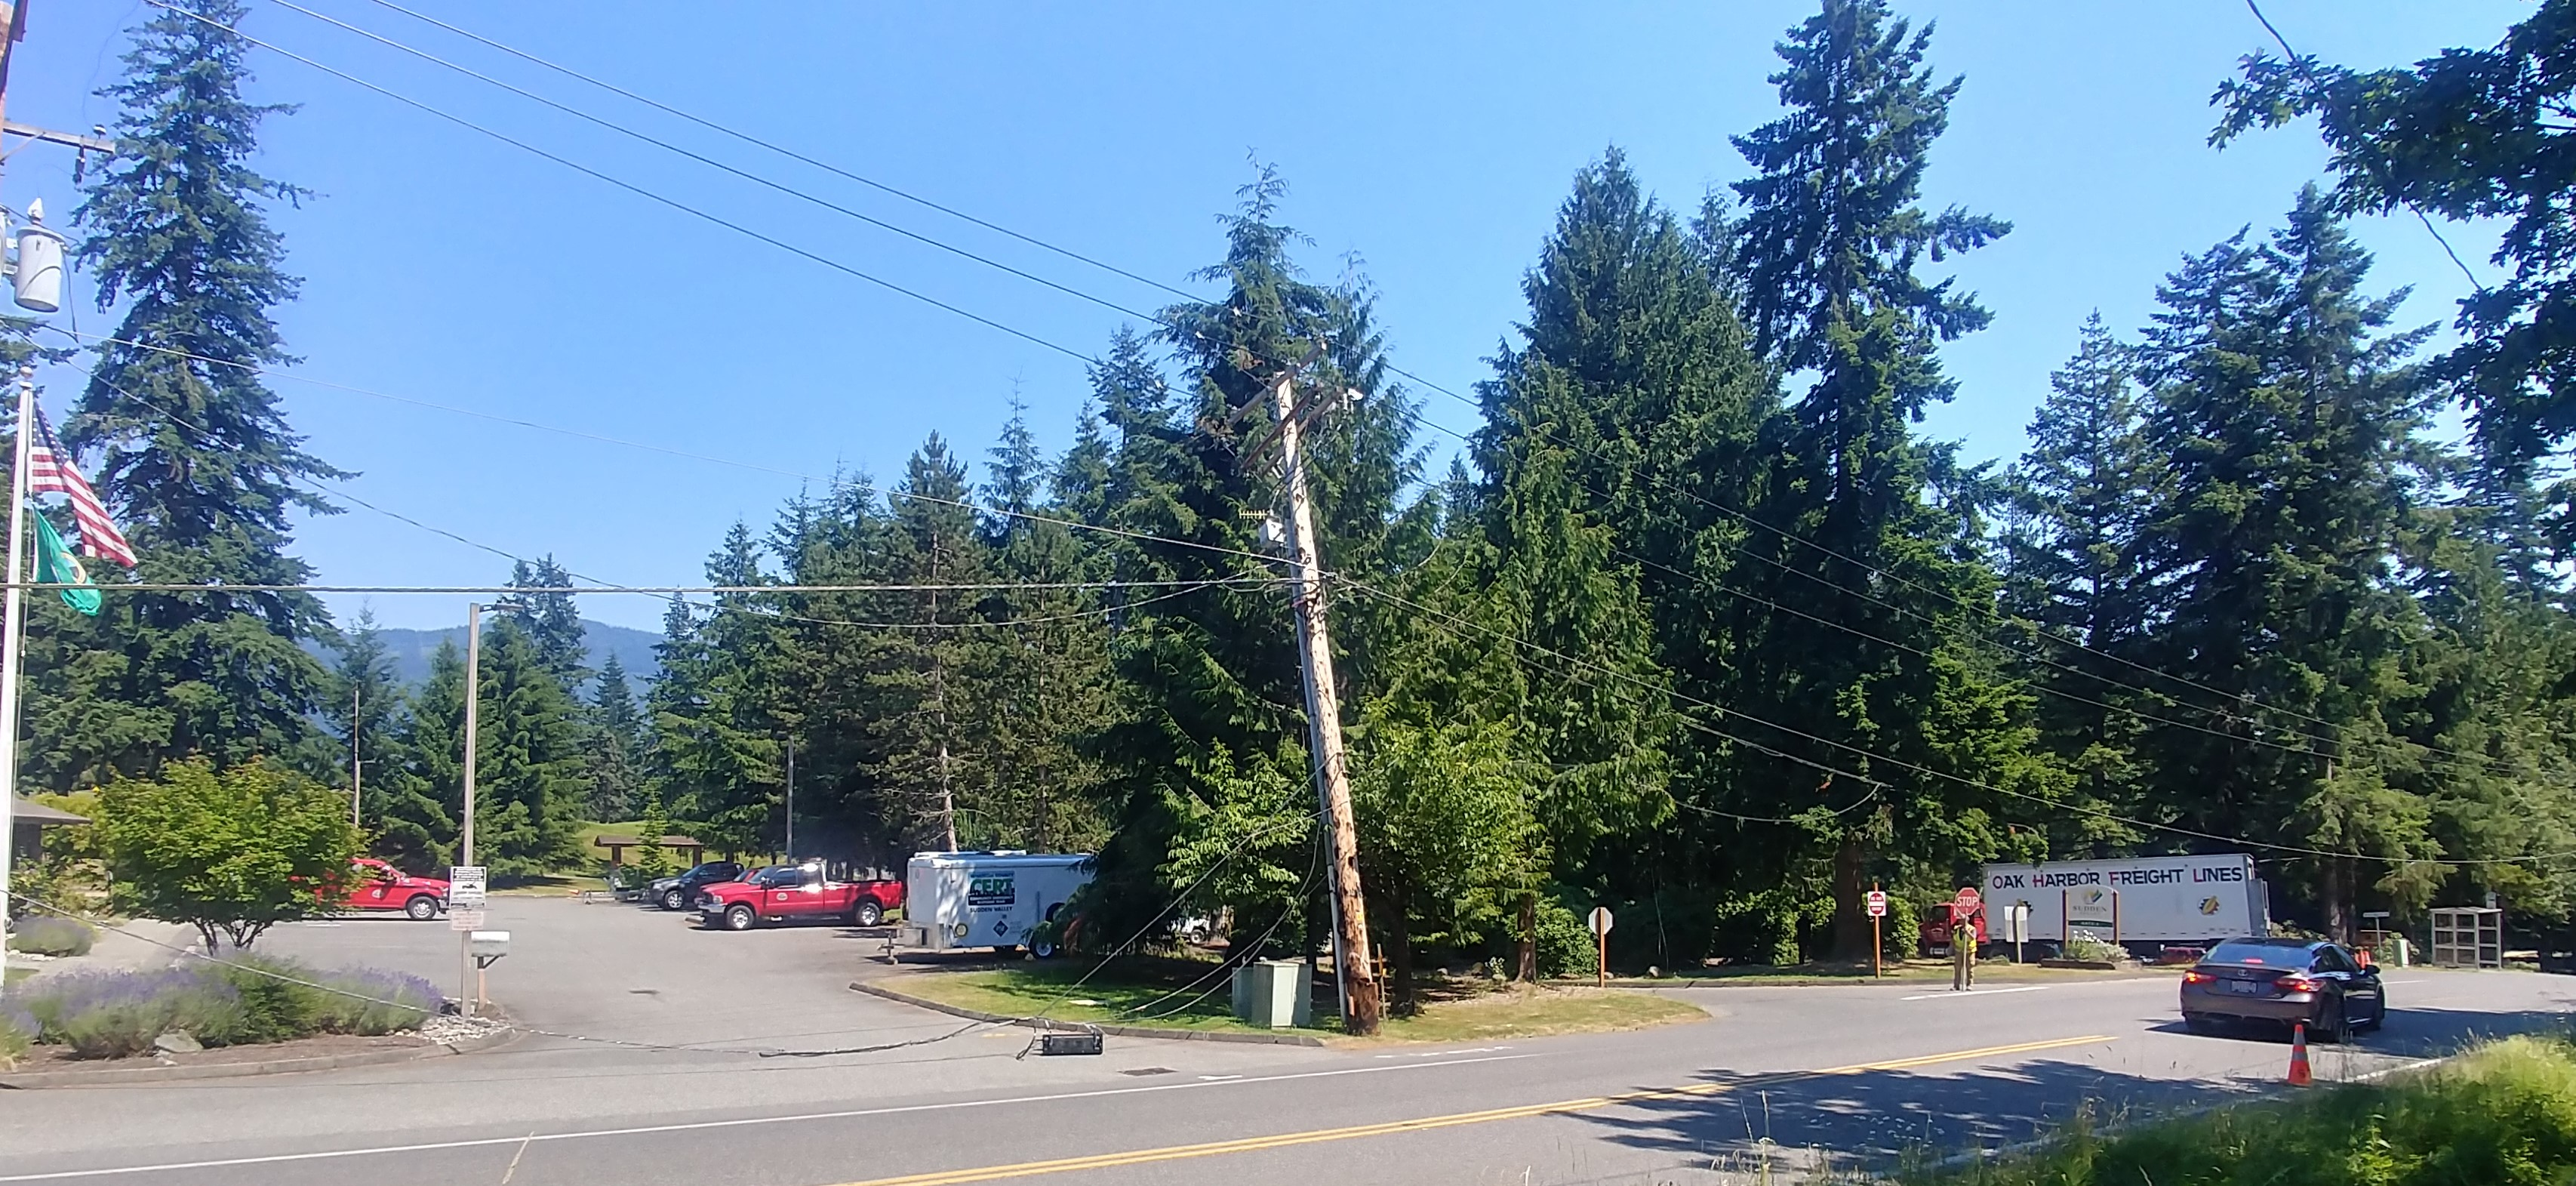 View of broken power pole and downed lines at Gate 1 in Sudden Valley (June 28, 2021). Photo: Hilary Parker